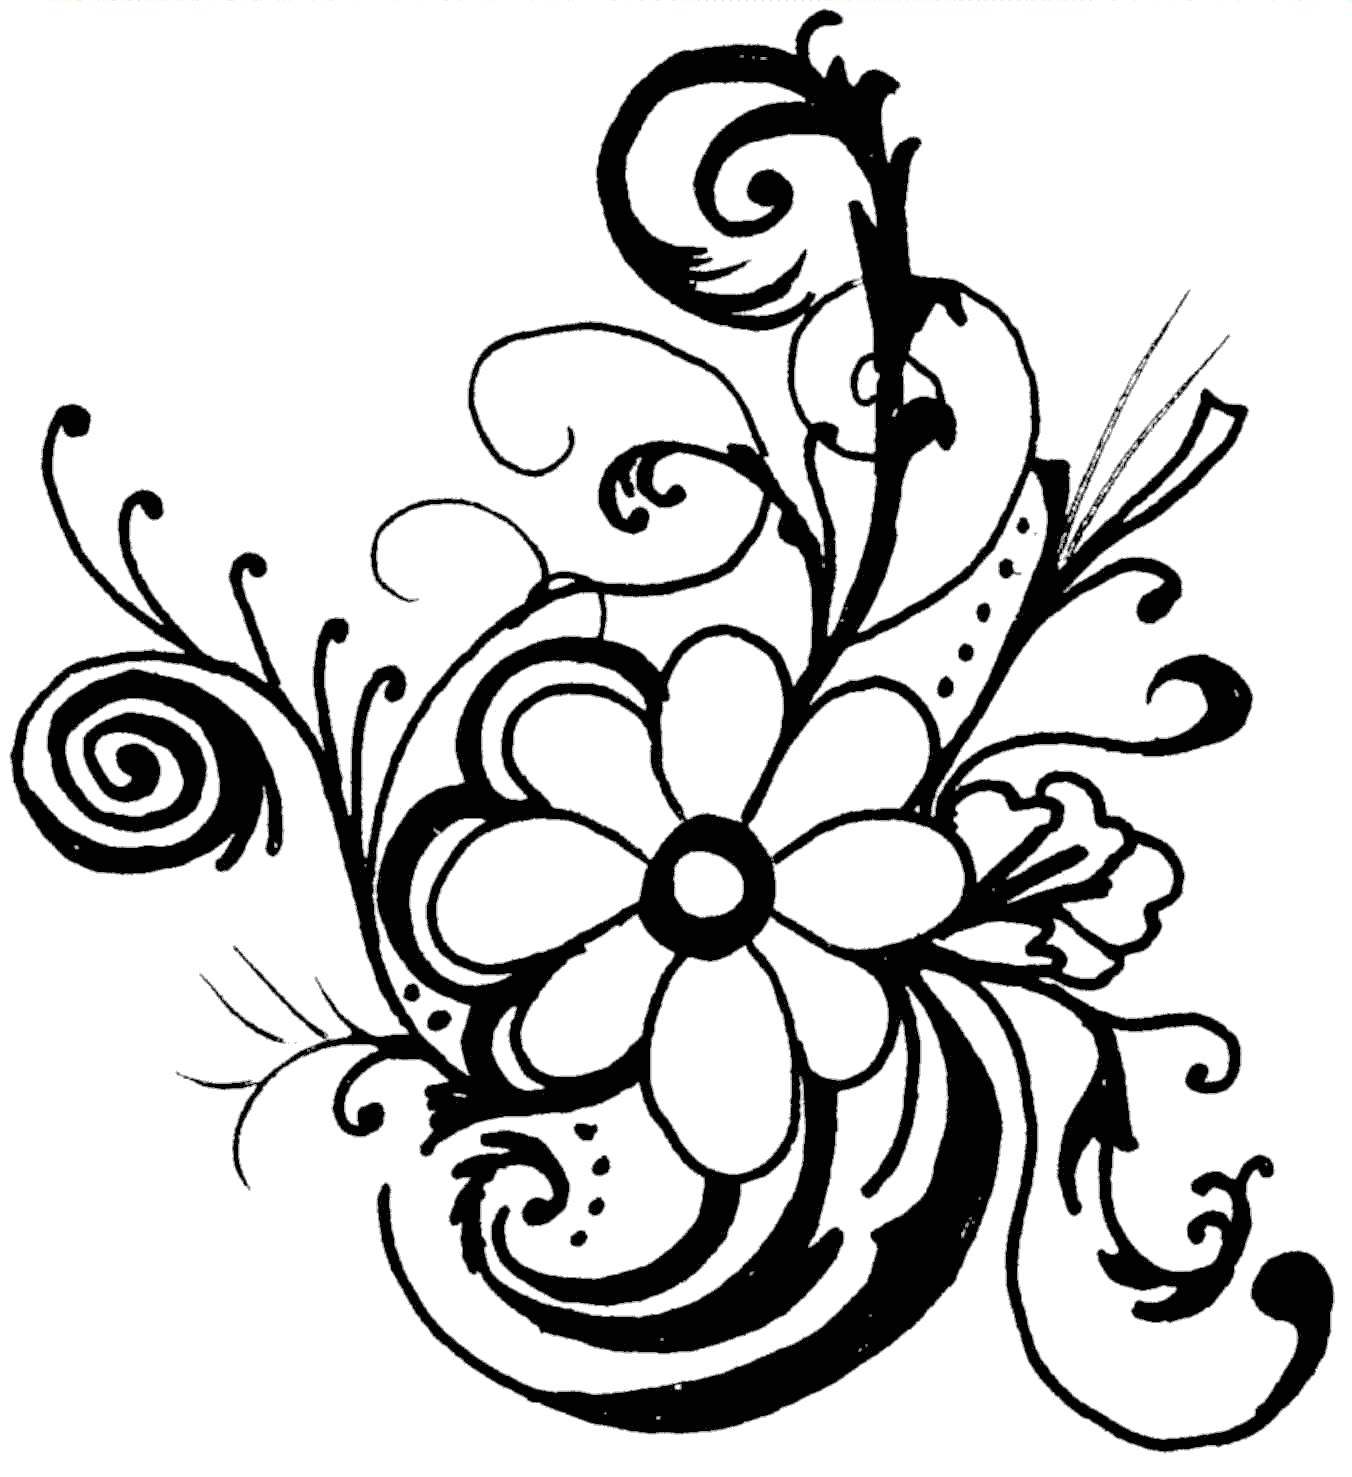 Free Line Art : Free line drawings of flowers clipart best